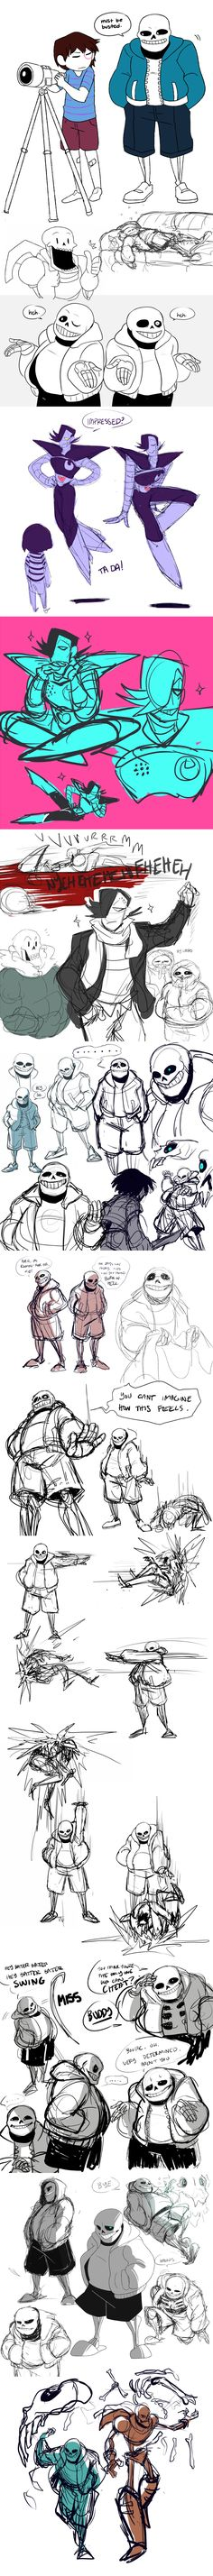 UNDERTALE SKETCHDUMP 1 [spoilers!] by inside-under.deviantart.com on @DeviantArt